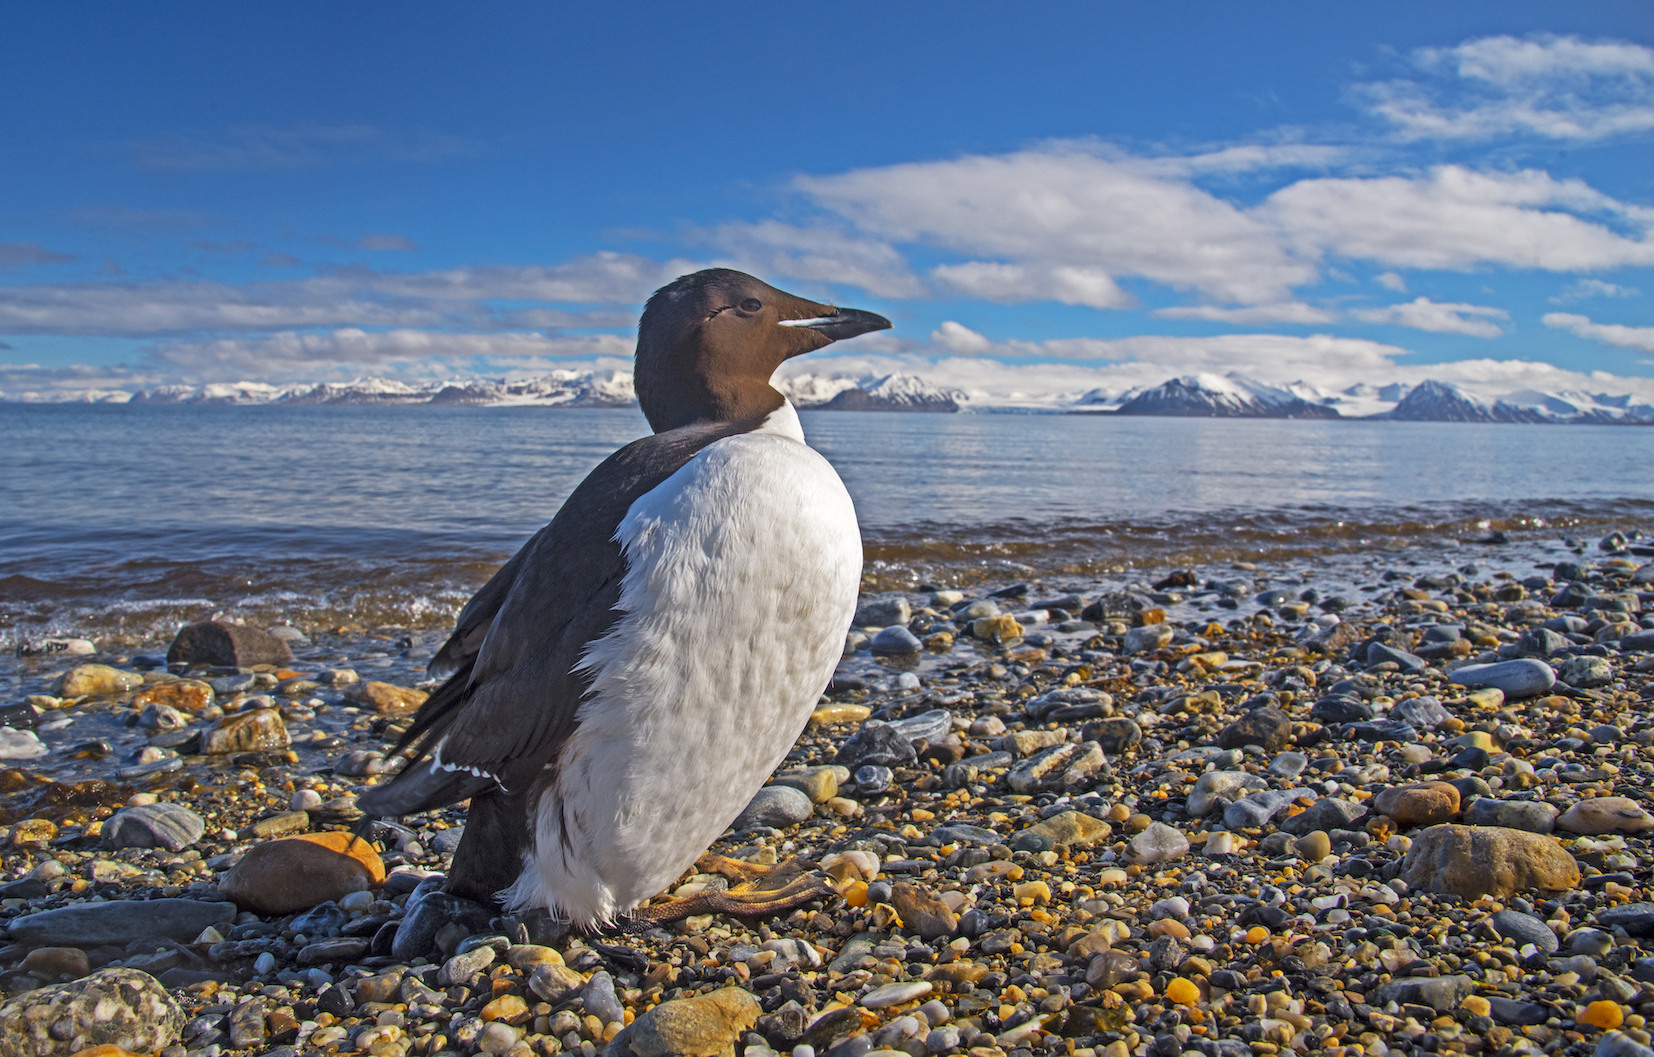 A number of seabirds in Svalbard, like the common guillemot, are migratory in nature. They arrive for the summer months and build nests in rocky cliffs and islands, where they breed and look after their young. Most species leave around September, when the polar night sets in. Photo: Dhritiman Mukherjee